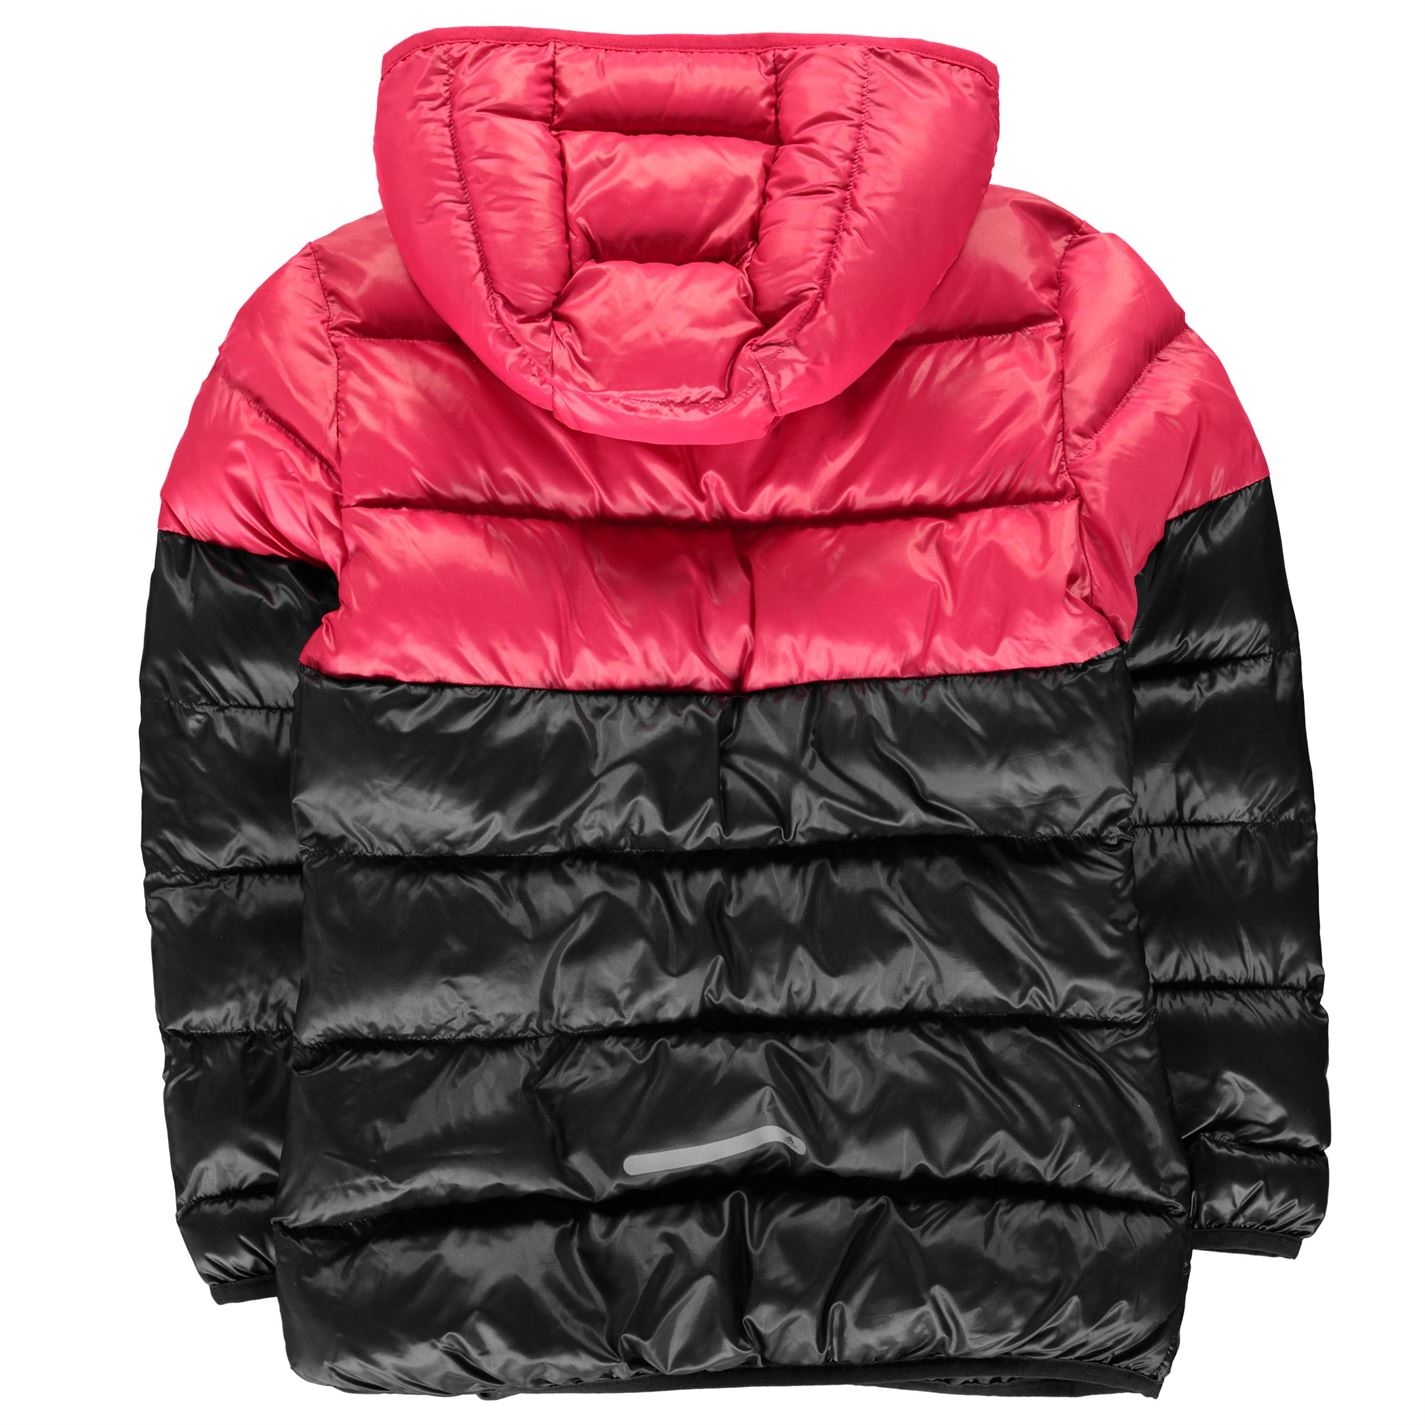 aef2442a4 adidas Padded Jacket Youngster Girls Coat Top Full Length Sleeve ...